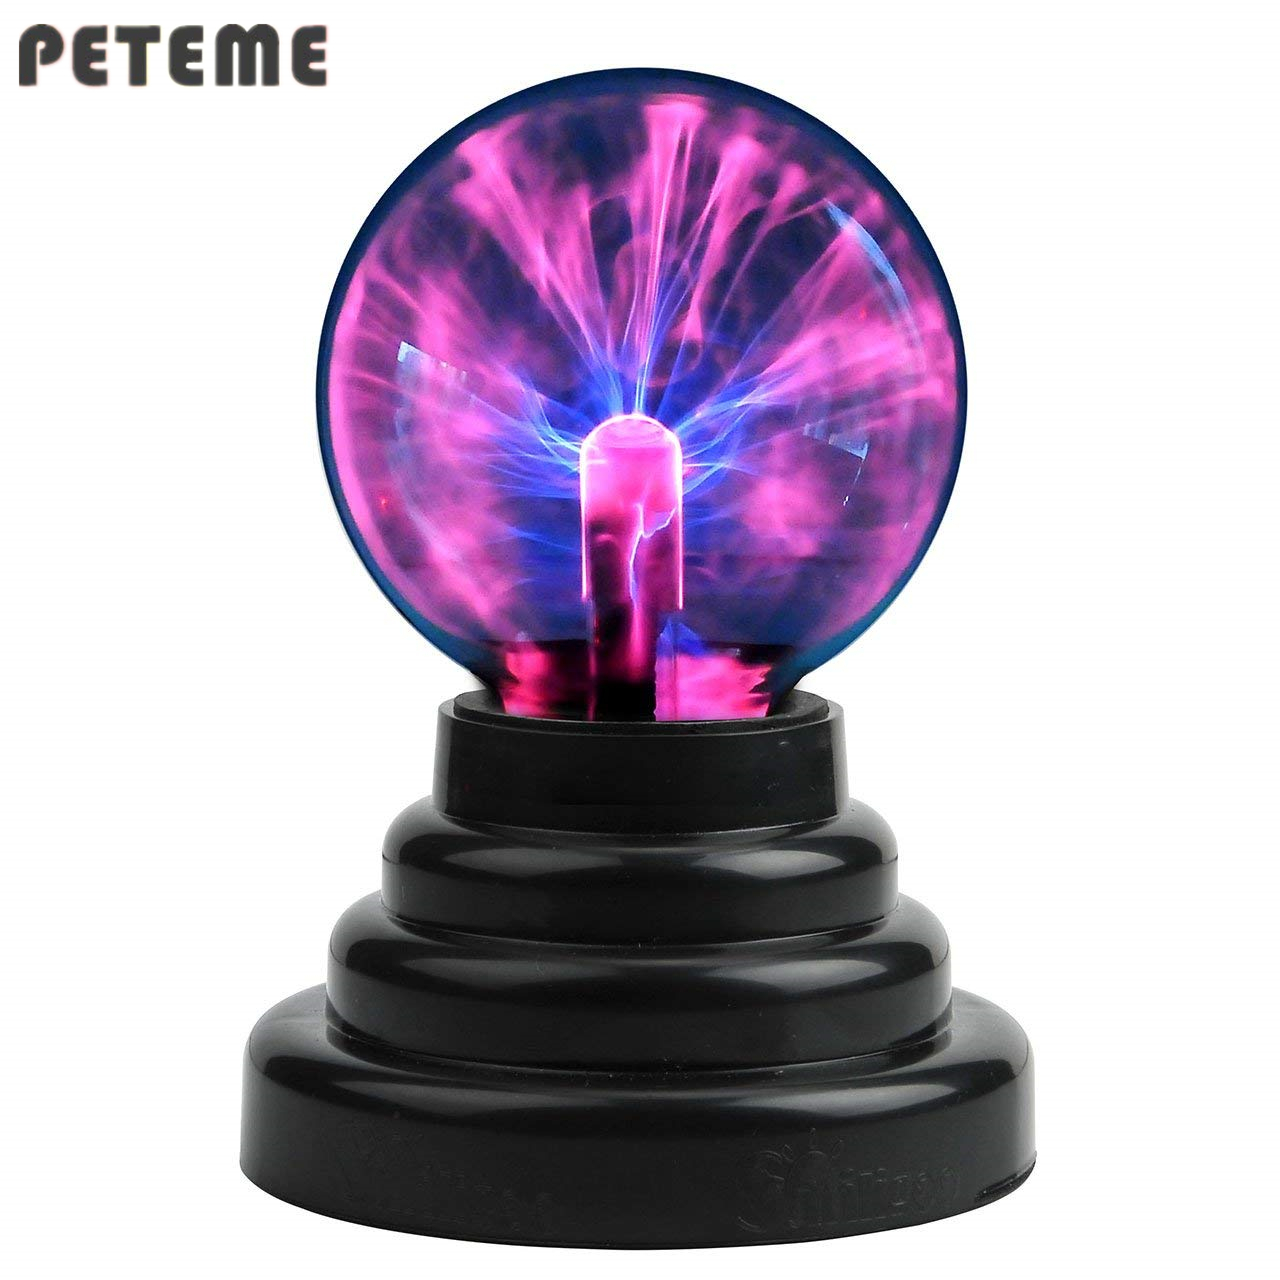 Plasma Ball Magic moon lamp USB Electrostatic Sphere Light bulb touch Novelty project novedades home decoration accessoriesPlasma Ball Magic moon lamp USB Electrostatic Sphere Light bulb touch Novelty project novedades home decoration accessories